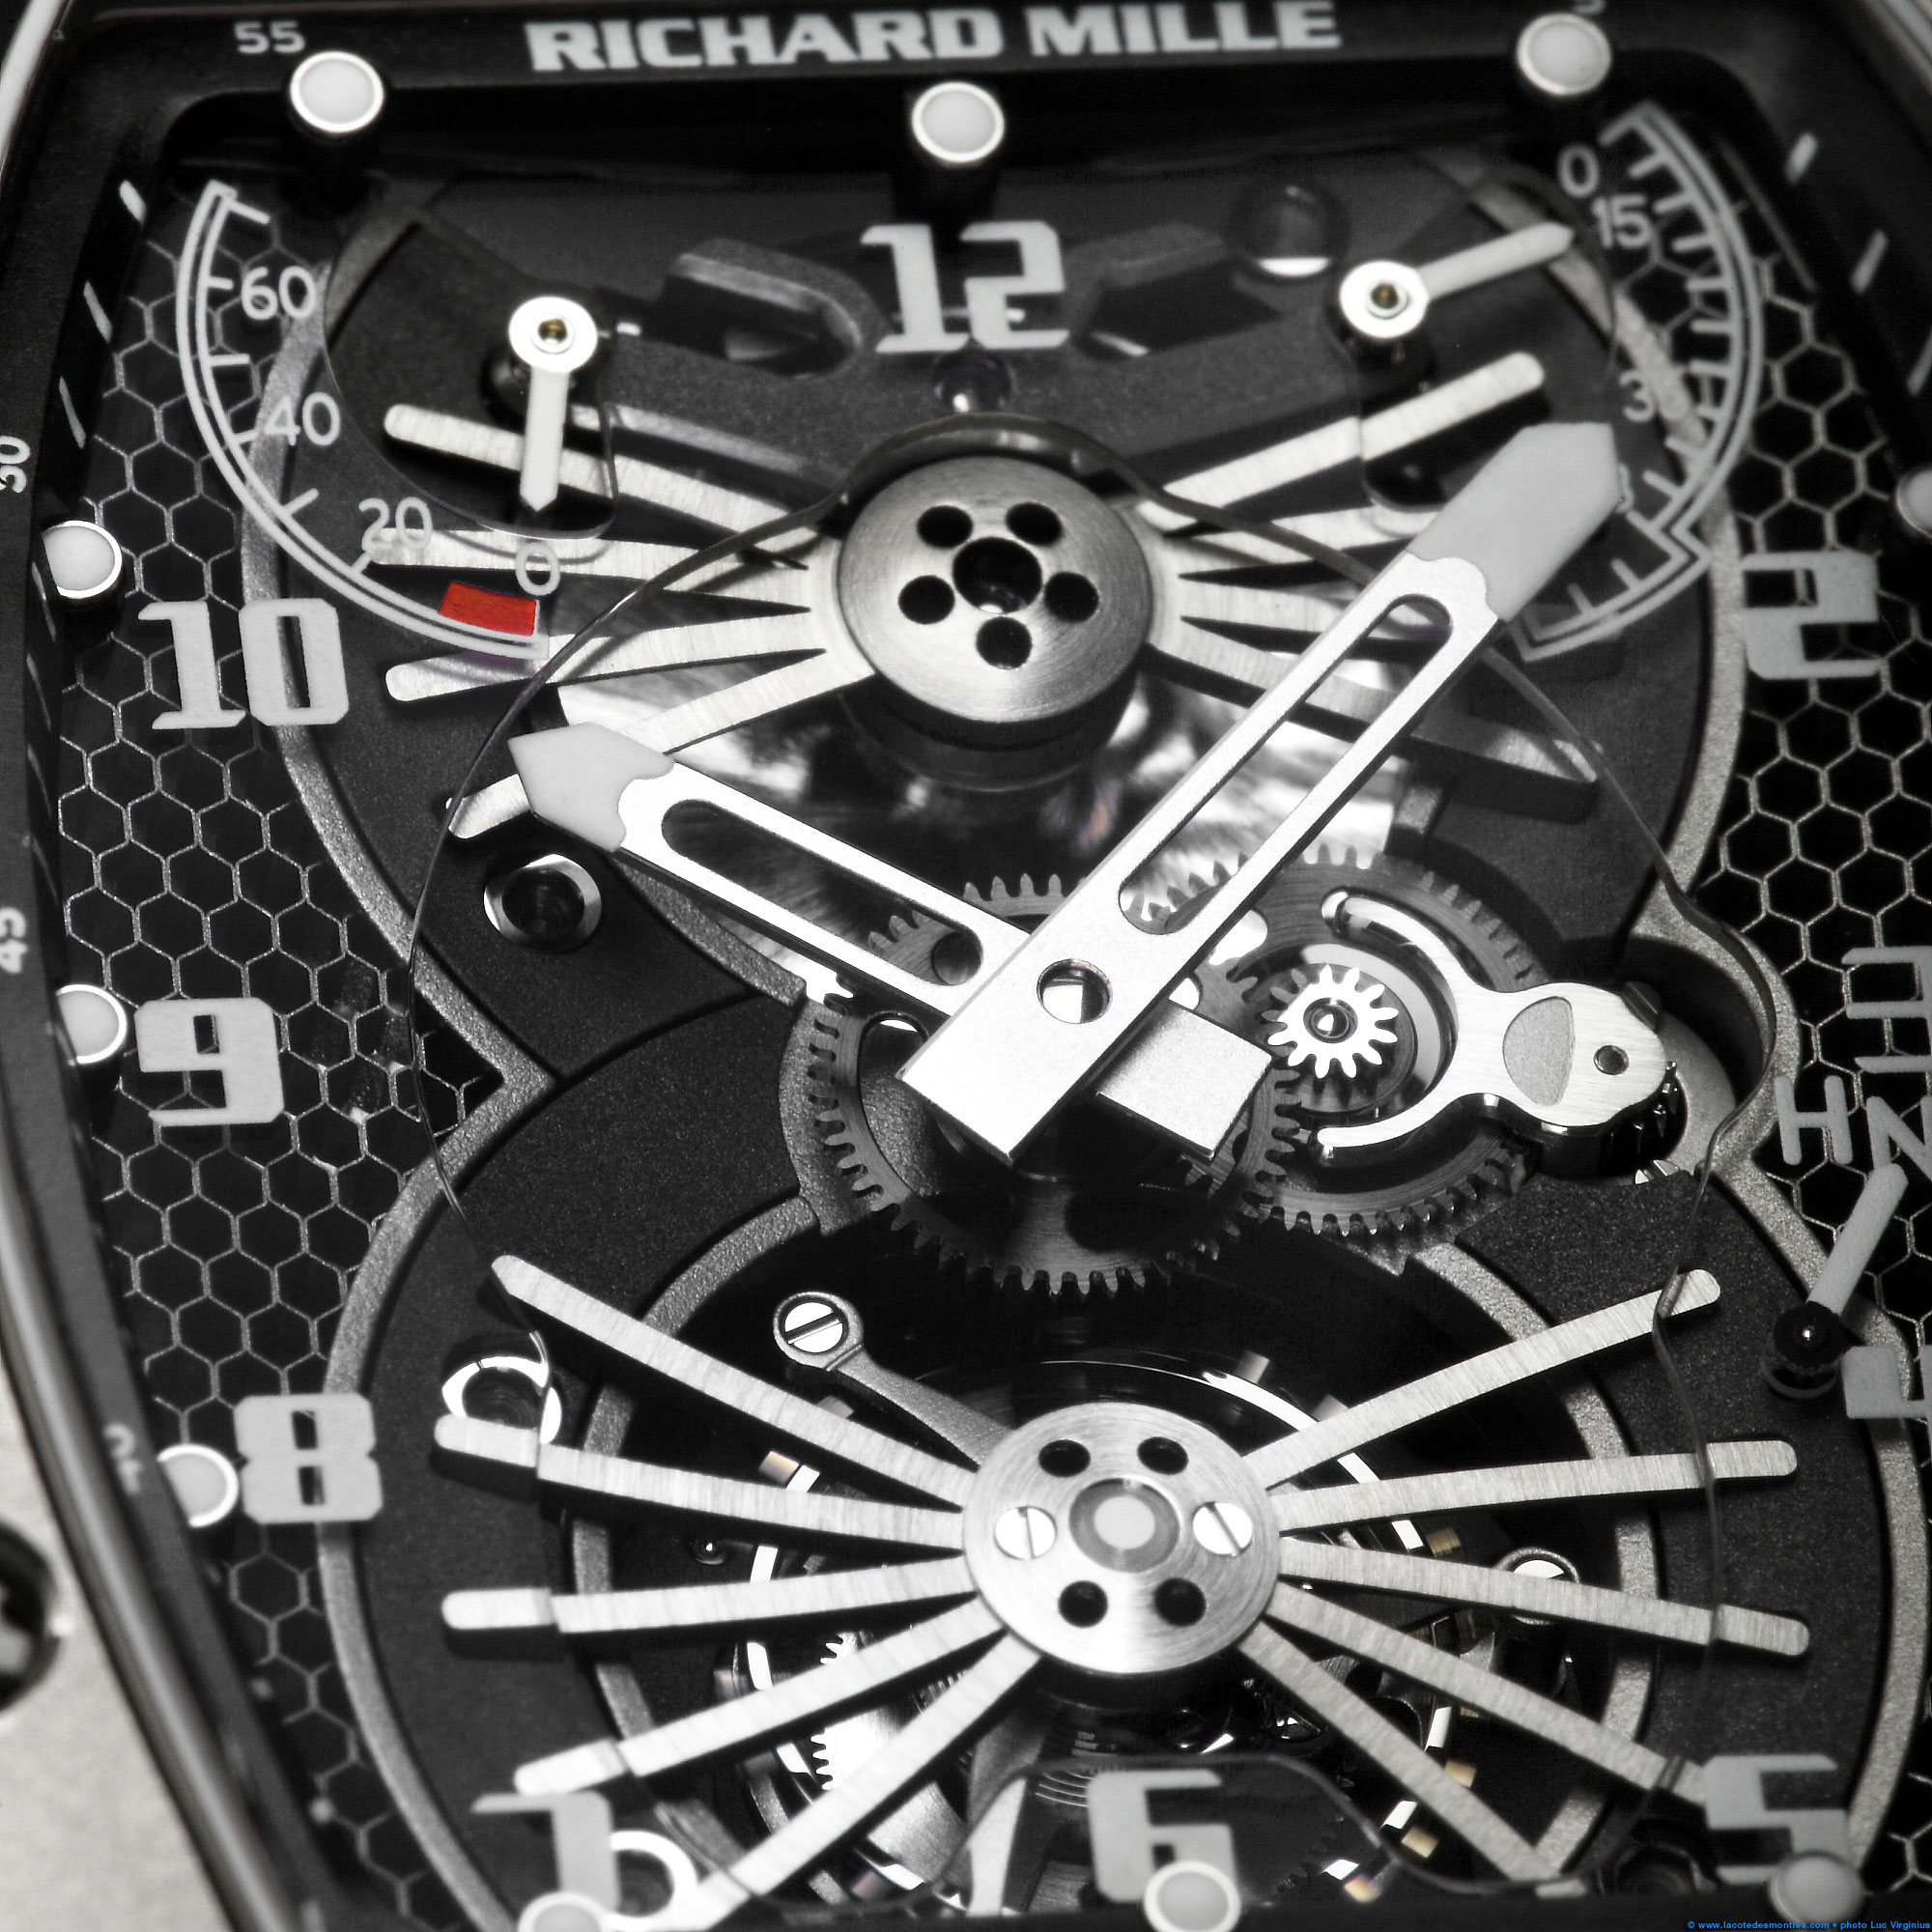 The Watch Quote: Photo - Richard Mille RM 021 Aerodyne white gold